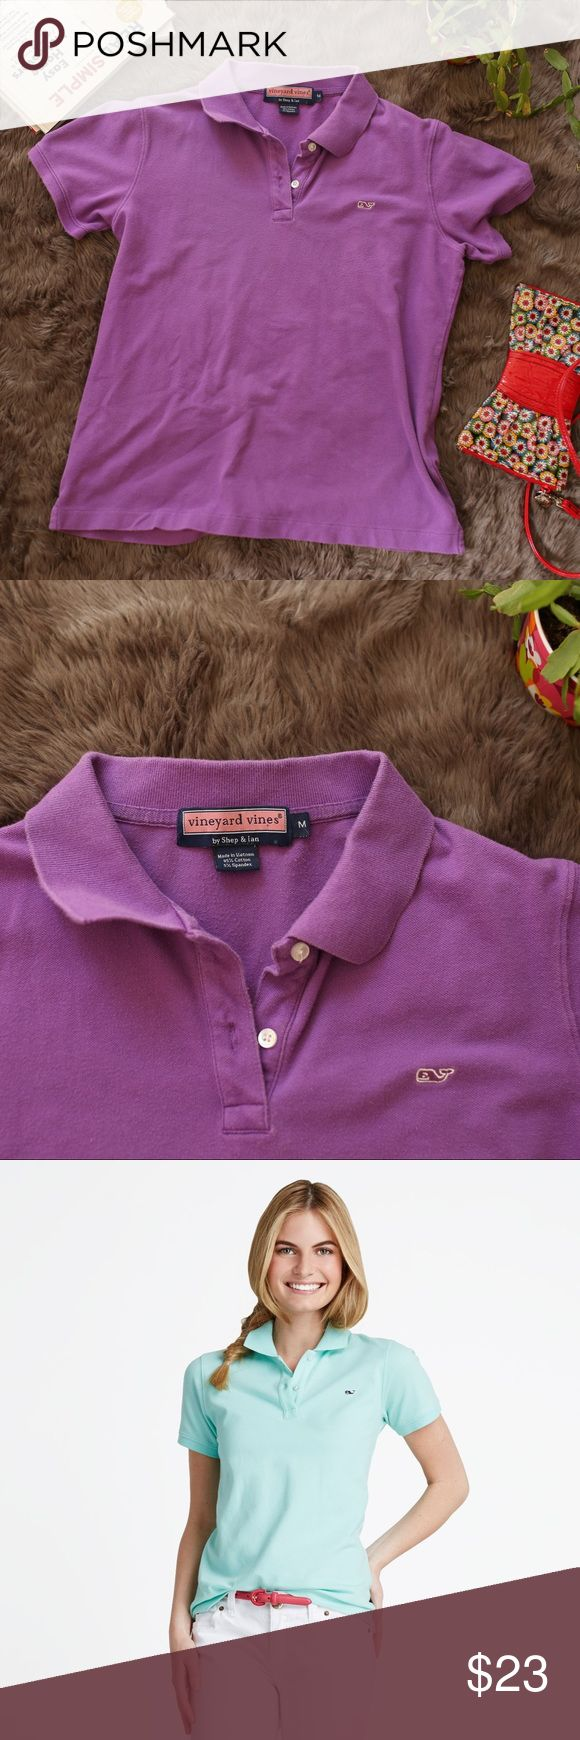 Vineyard Vines Preppy Polo in Purple Classic design and so preppy! This is a simple vineyard vines polo style shirt and a women's medium. With the iconic whale on the left breast! The colors are vibrant and the shirt is gently used in excellent condition! Timeless shirt and an awesome brand Vineyard Vines Tops